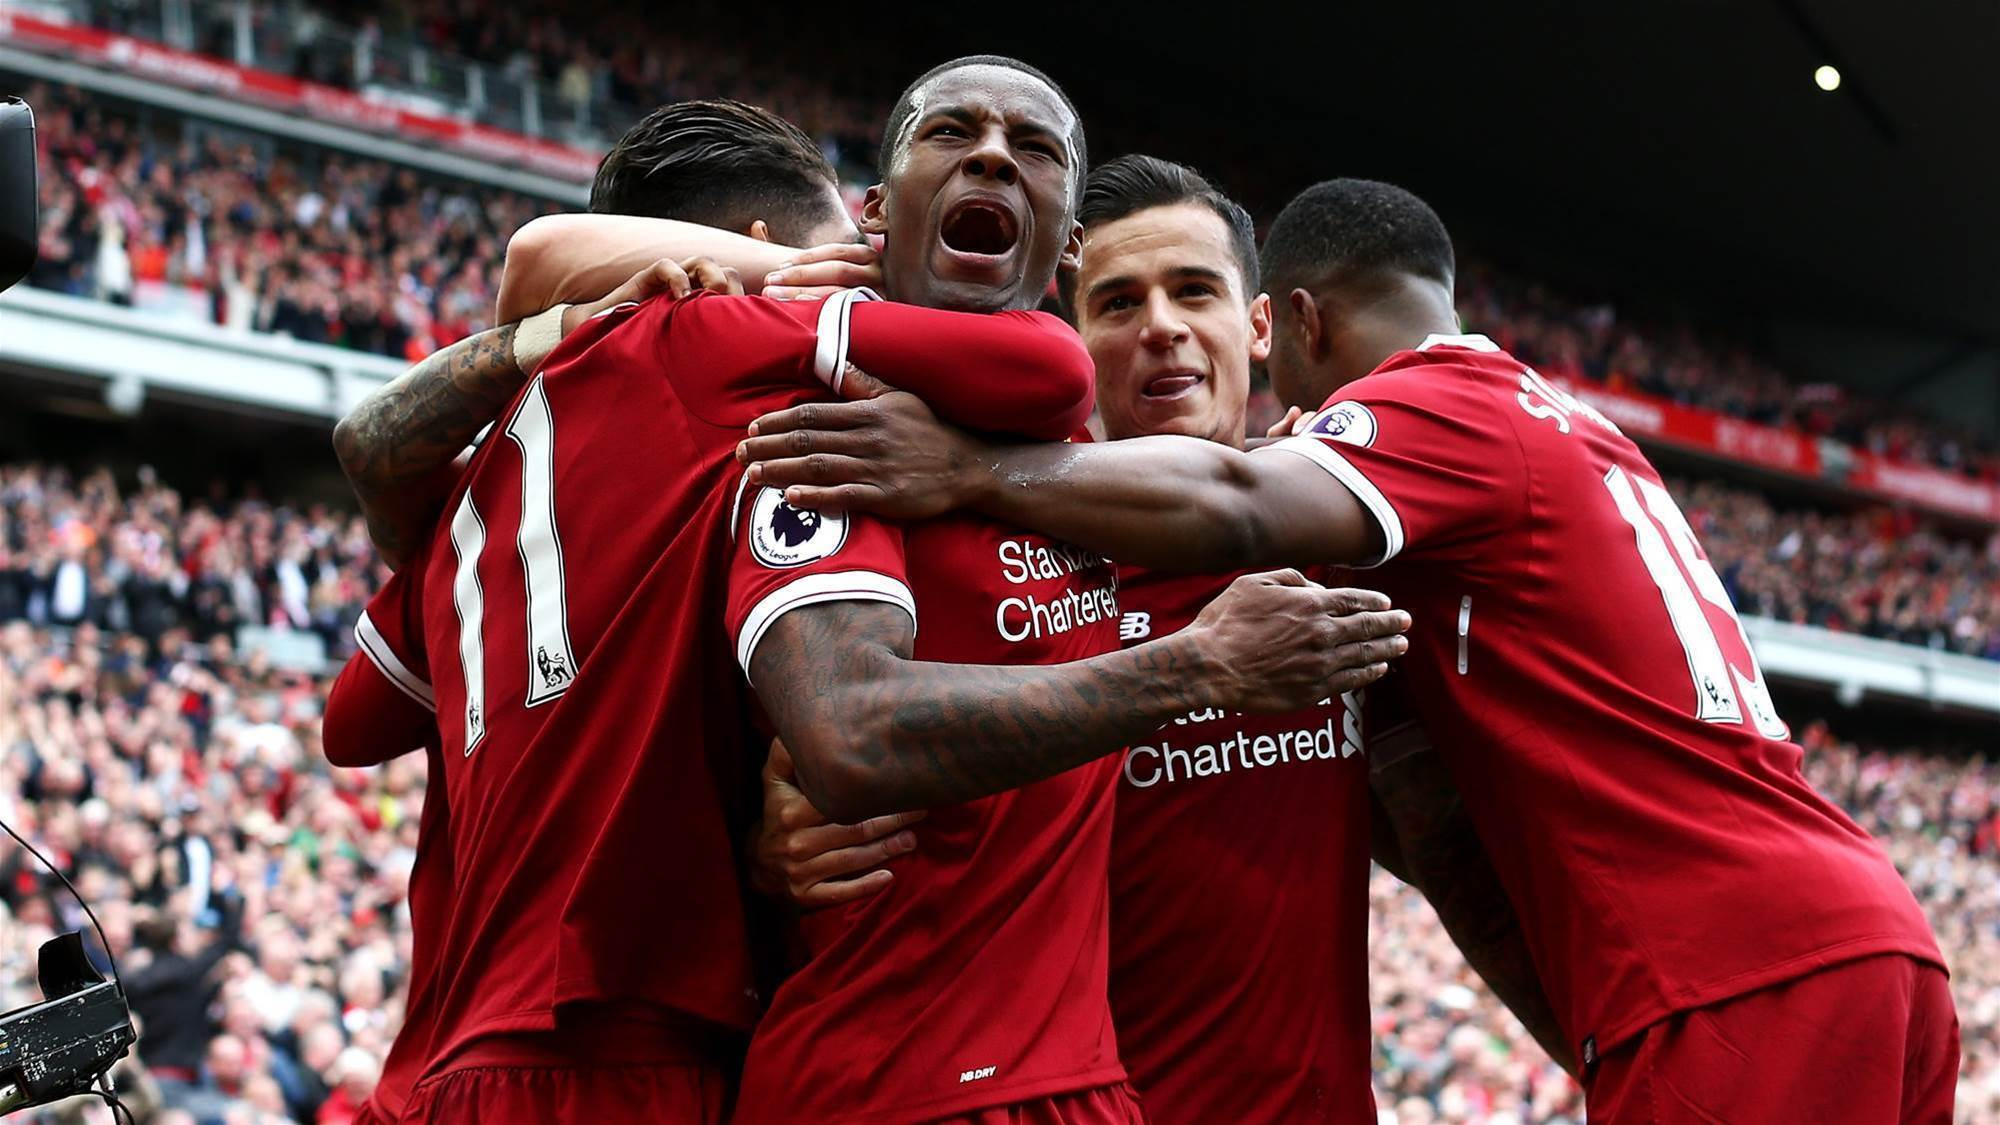 Liverpool name strong squad for Sydney clash